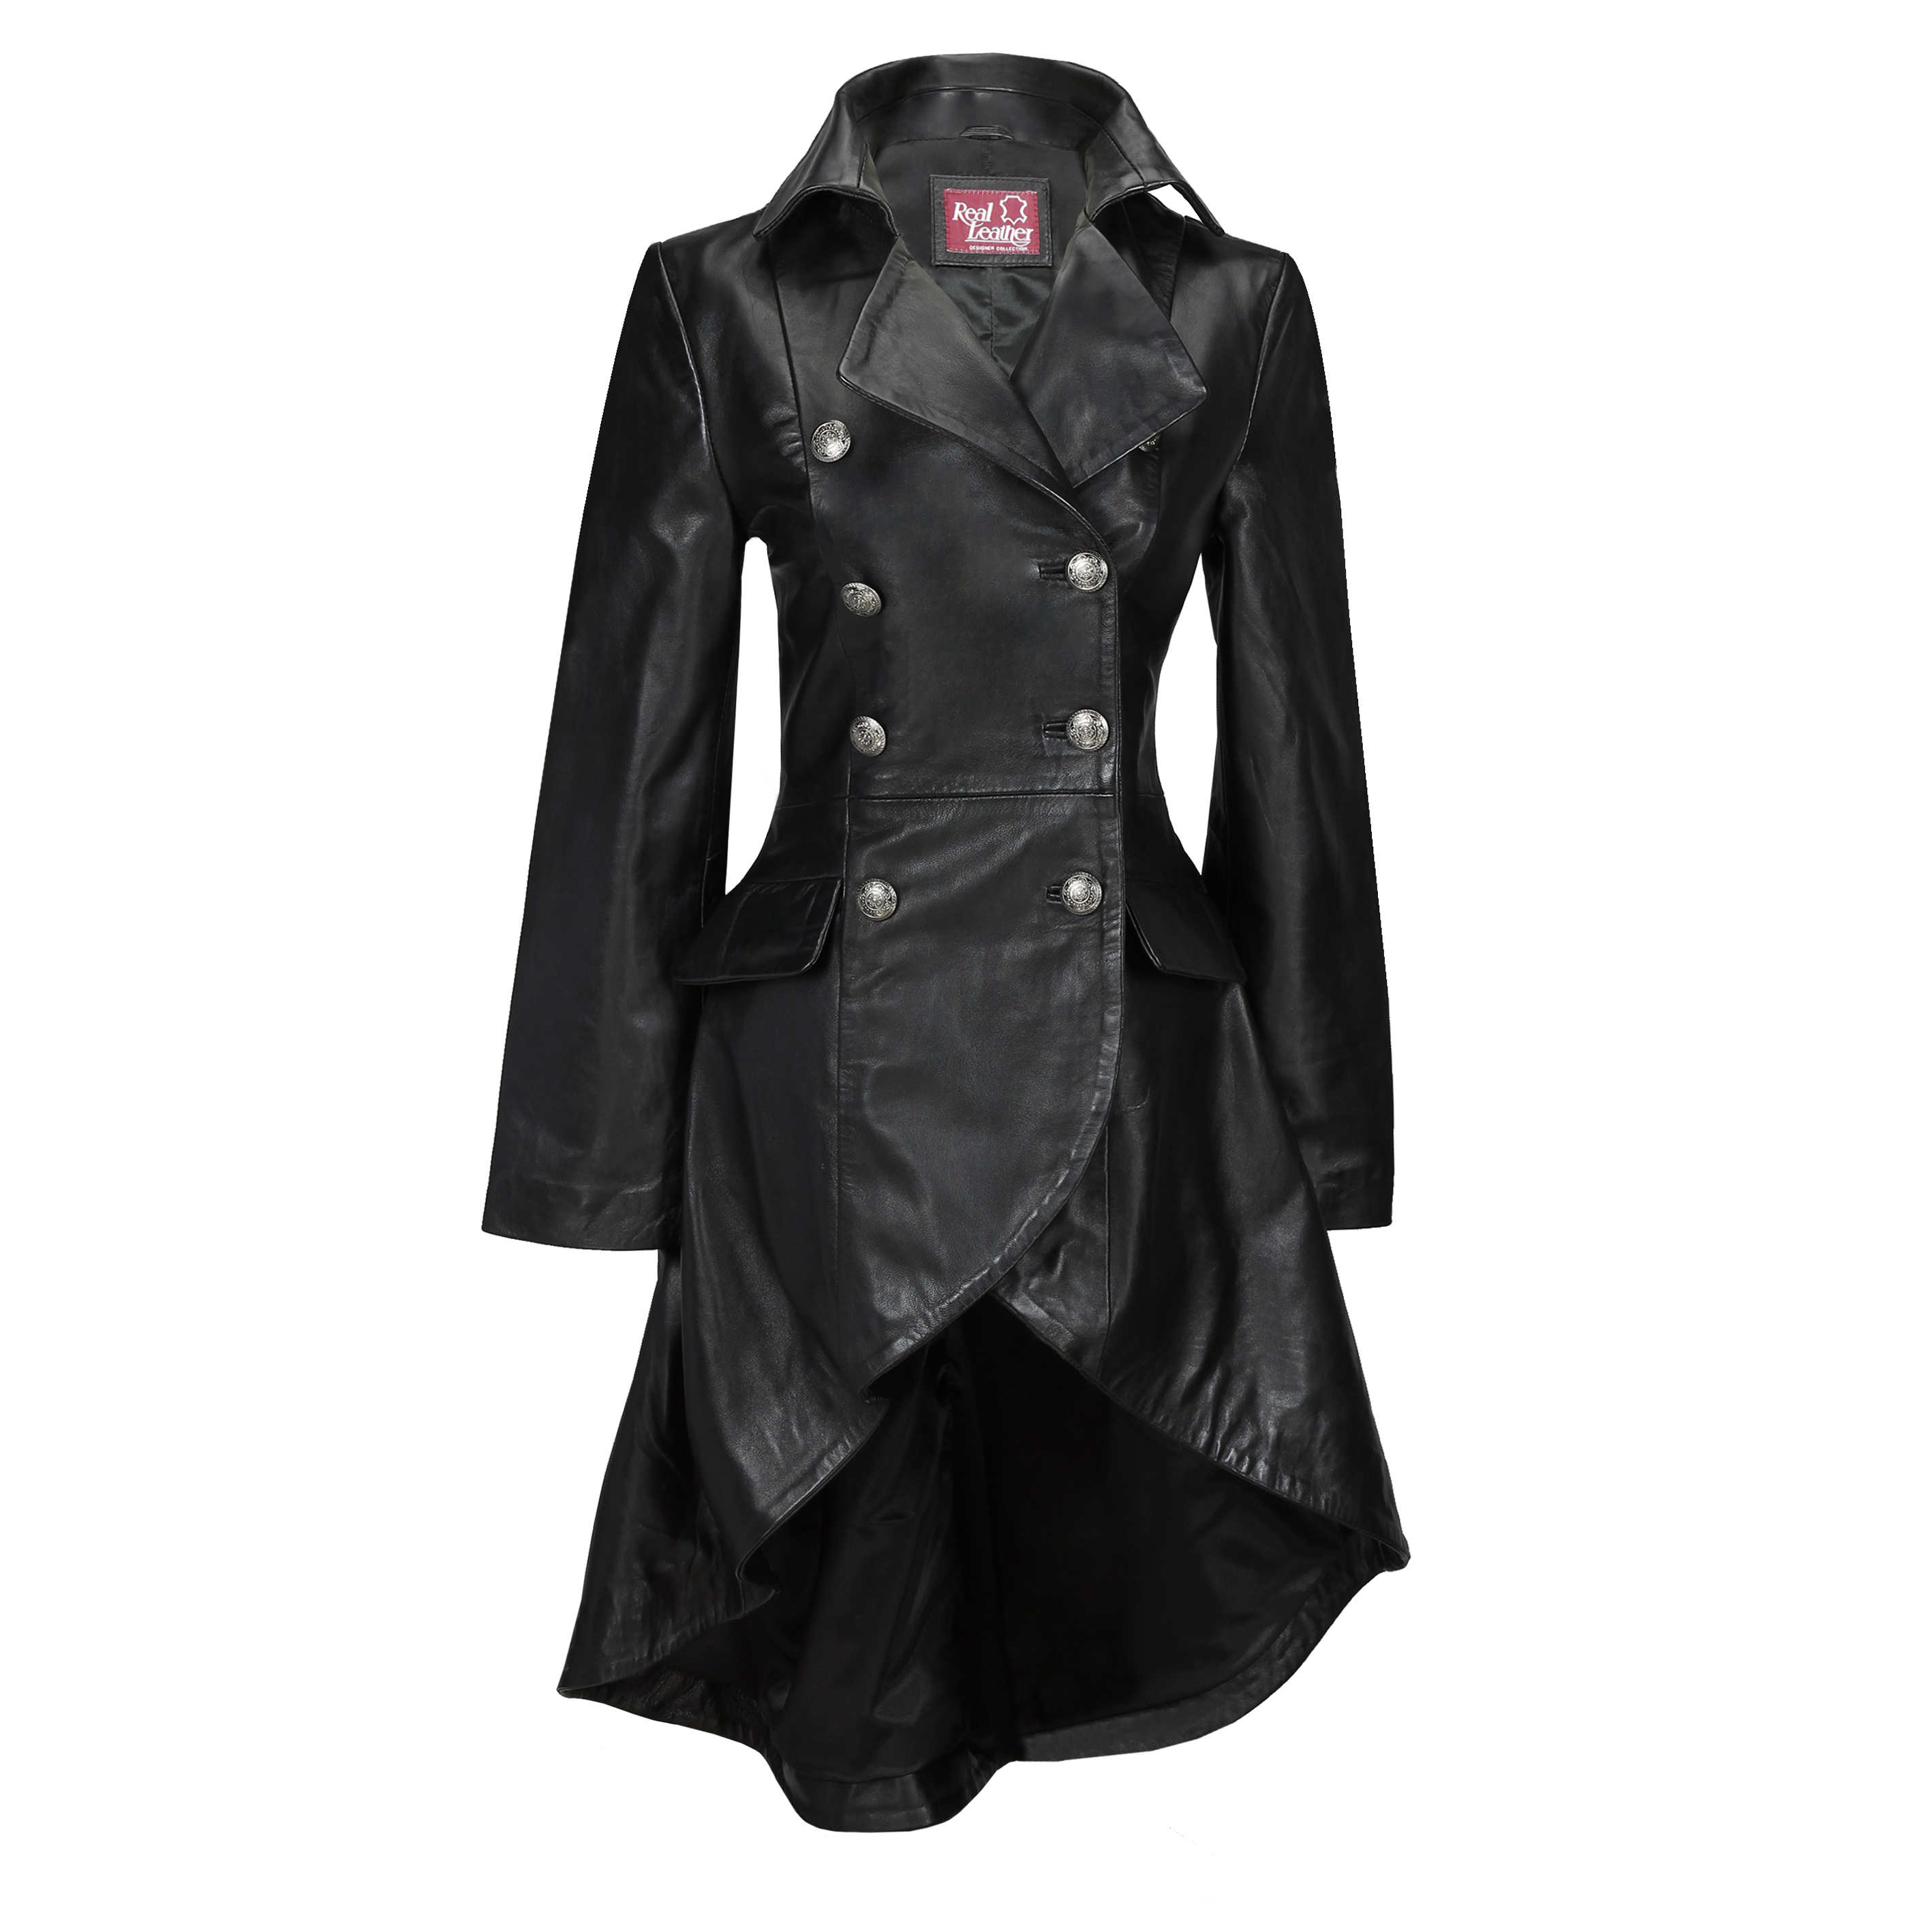 6c7b8fce74d72 Victorian Leather Coat Gothic Black Real Black Style Lace Jacket ...